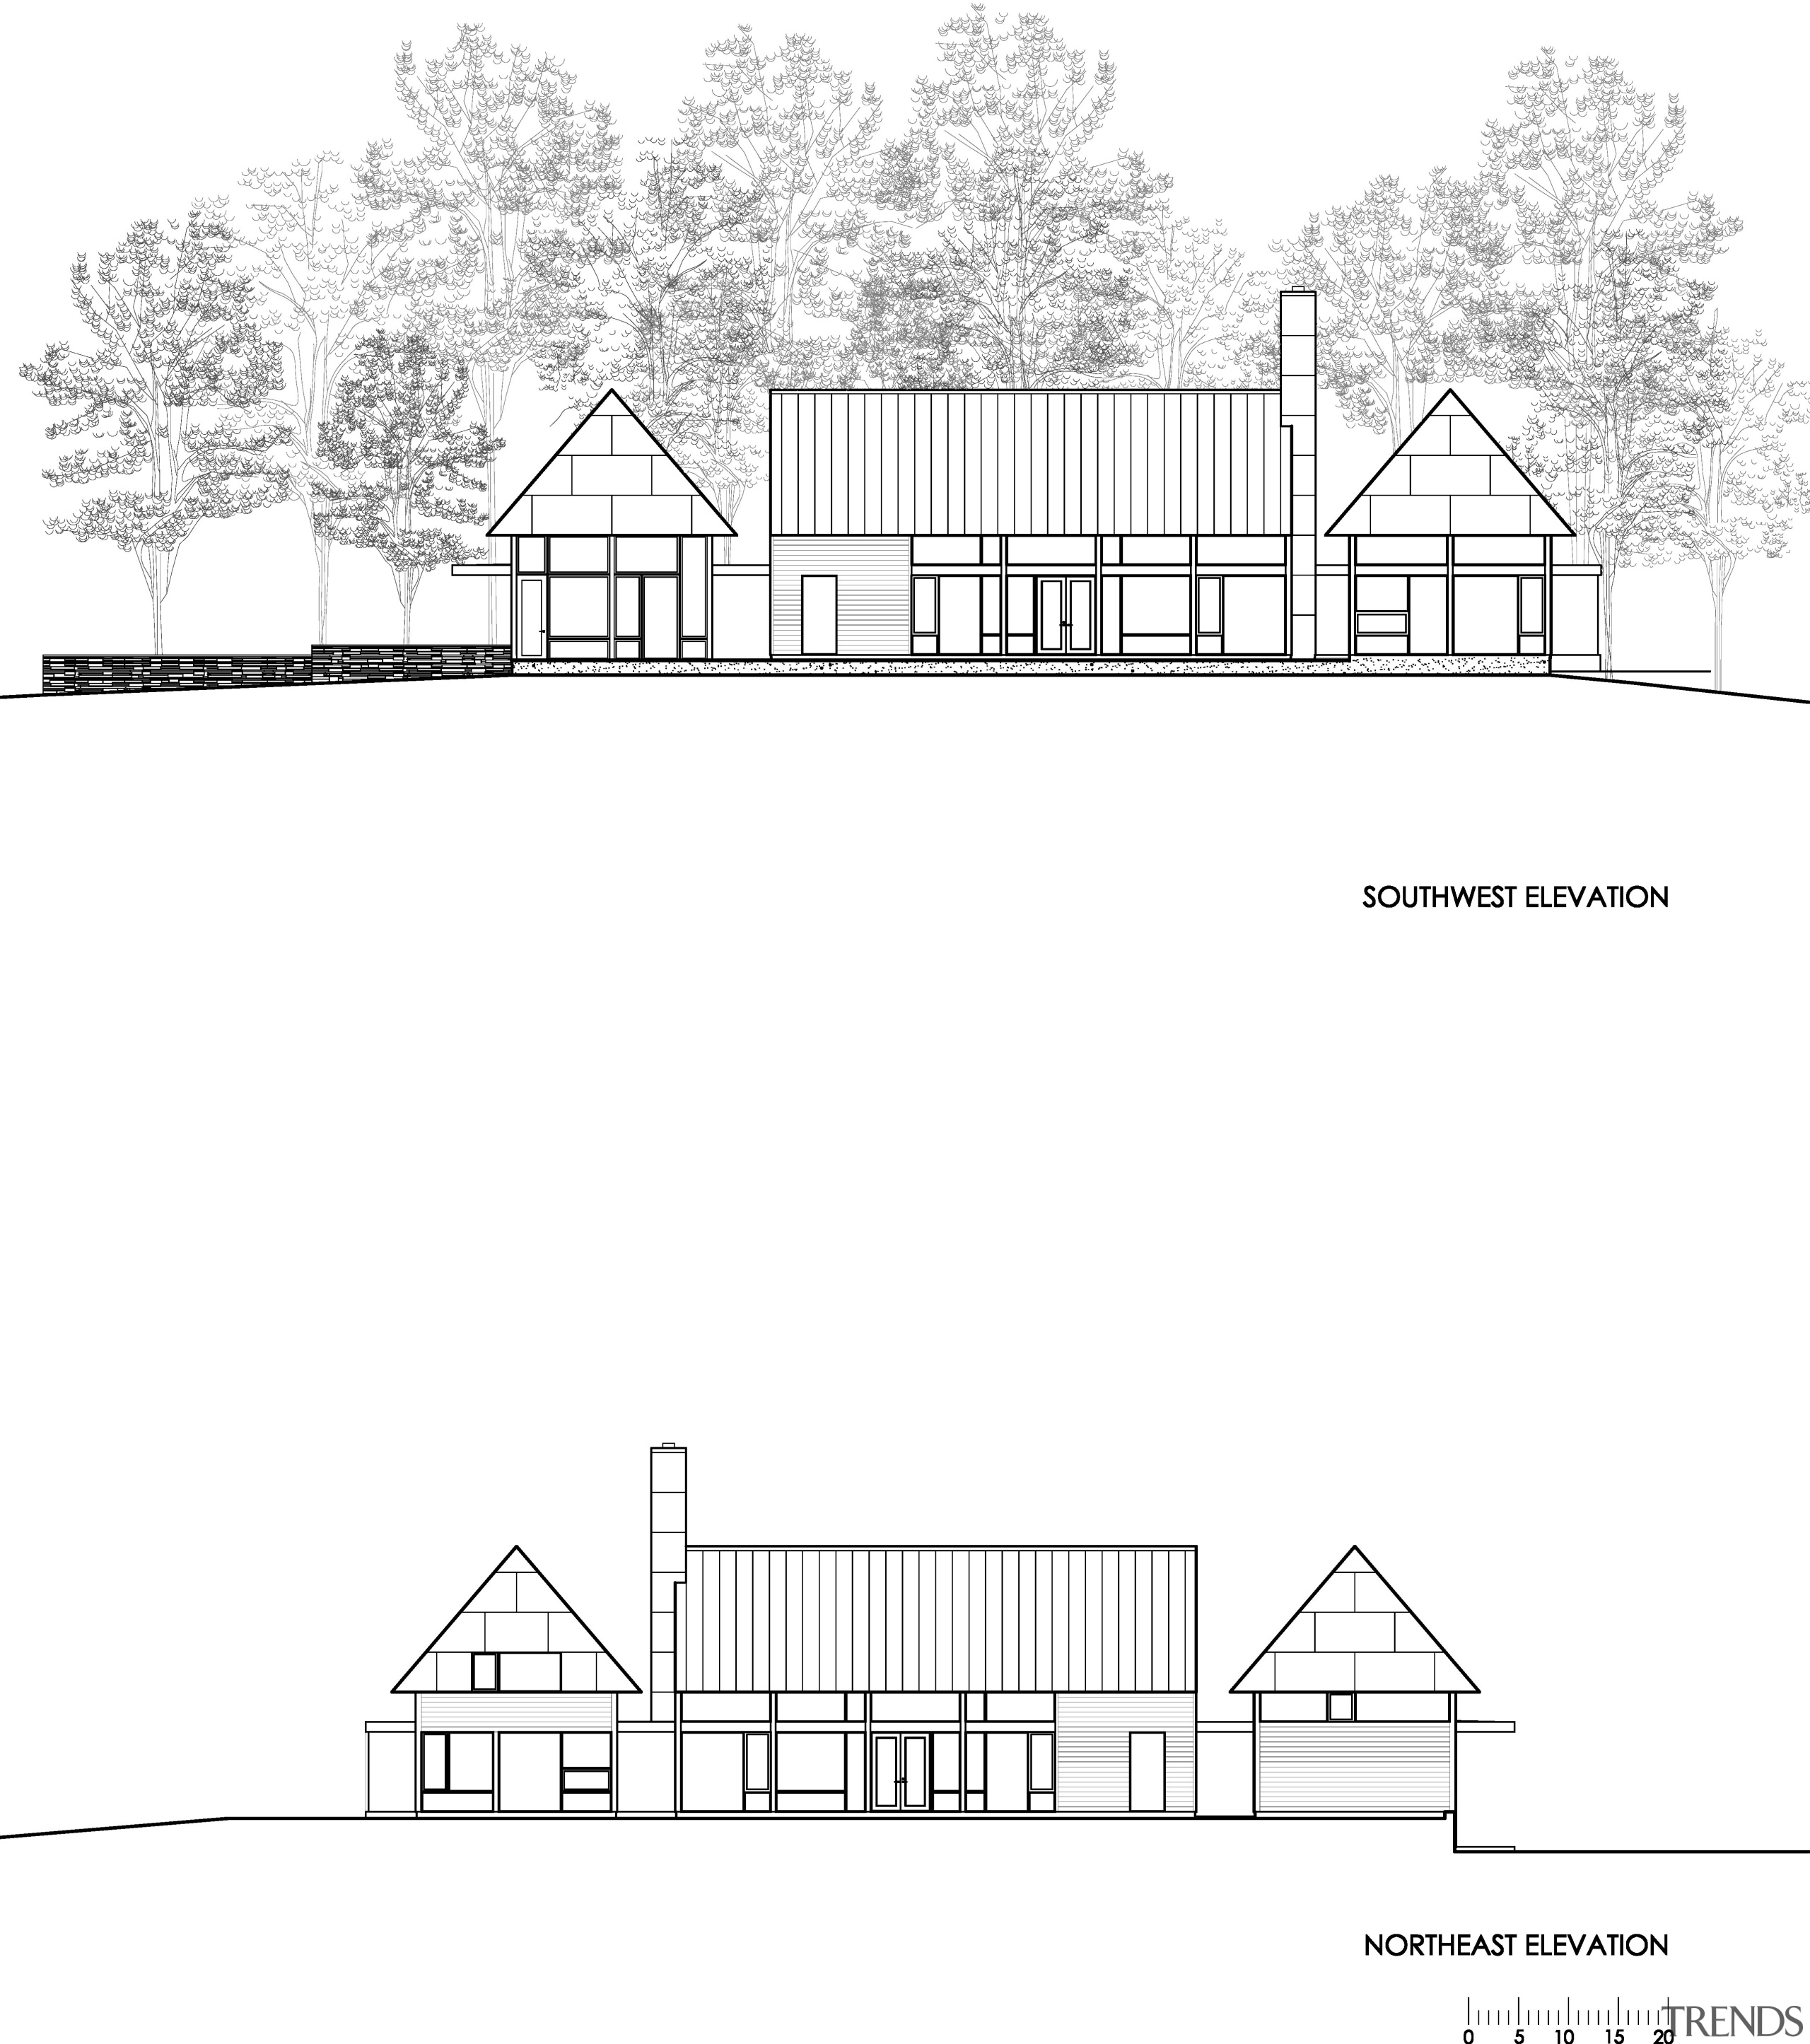 Modern country home plan by Robert M Gurney angle, architecture, area, artwork, black and white, design, diagram, drawing, elevation, facade, floor plan, font, home, house, land lot, line, line art, monochrome, plan, product design, property, residential area, shed, structure, text, white